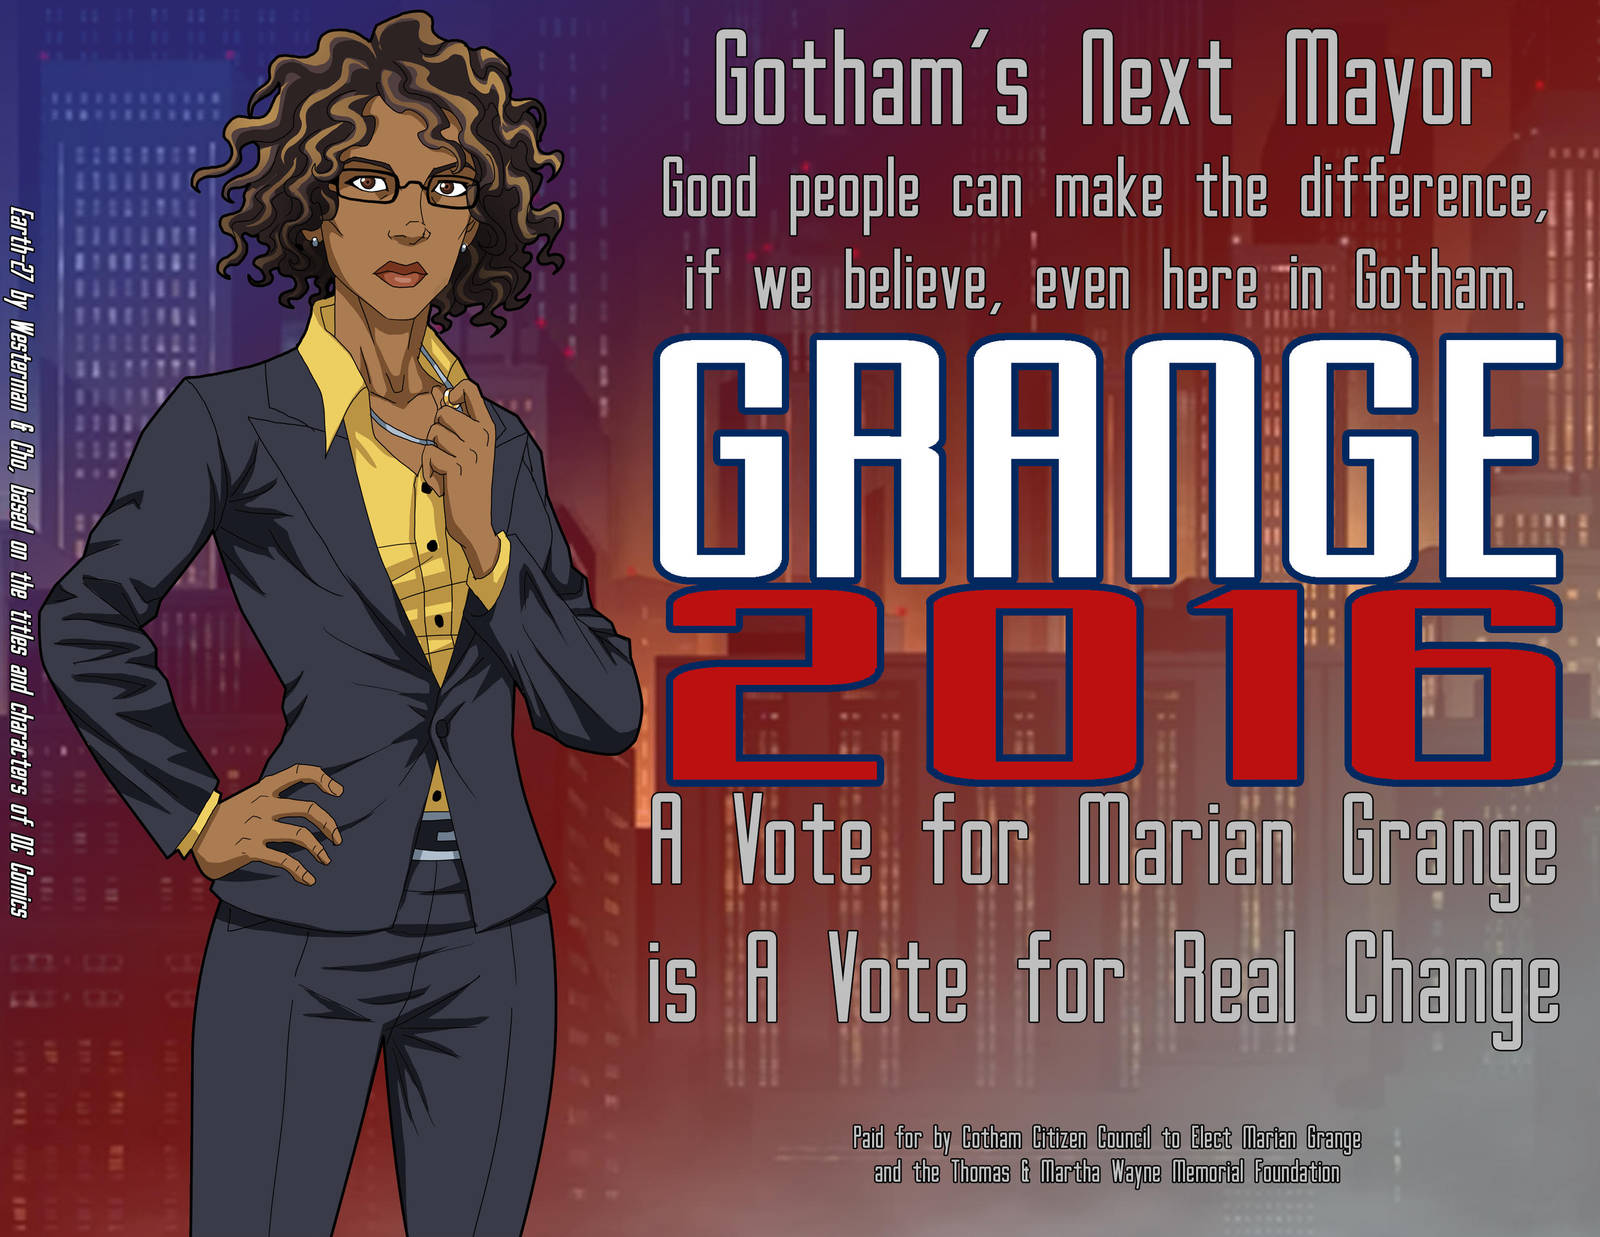 Elect Grange by Roysovitch